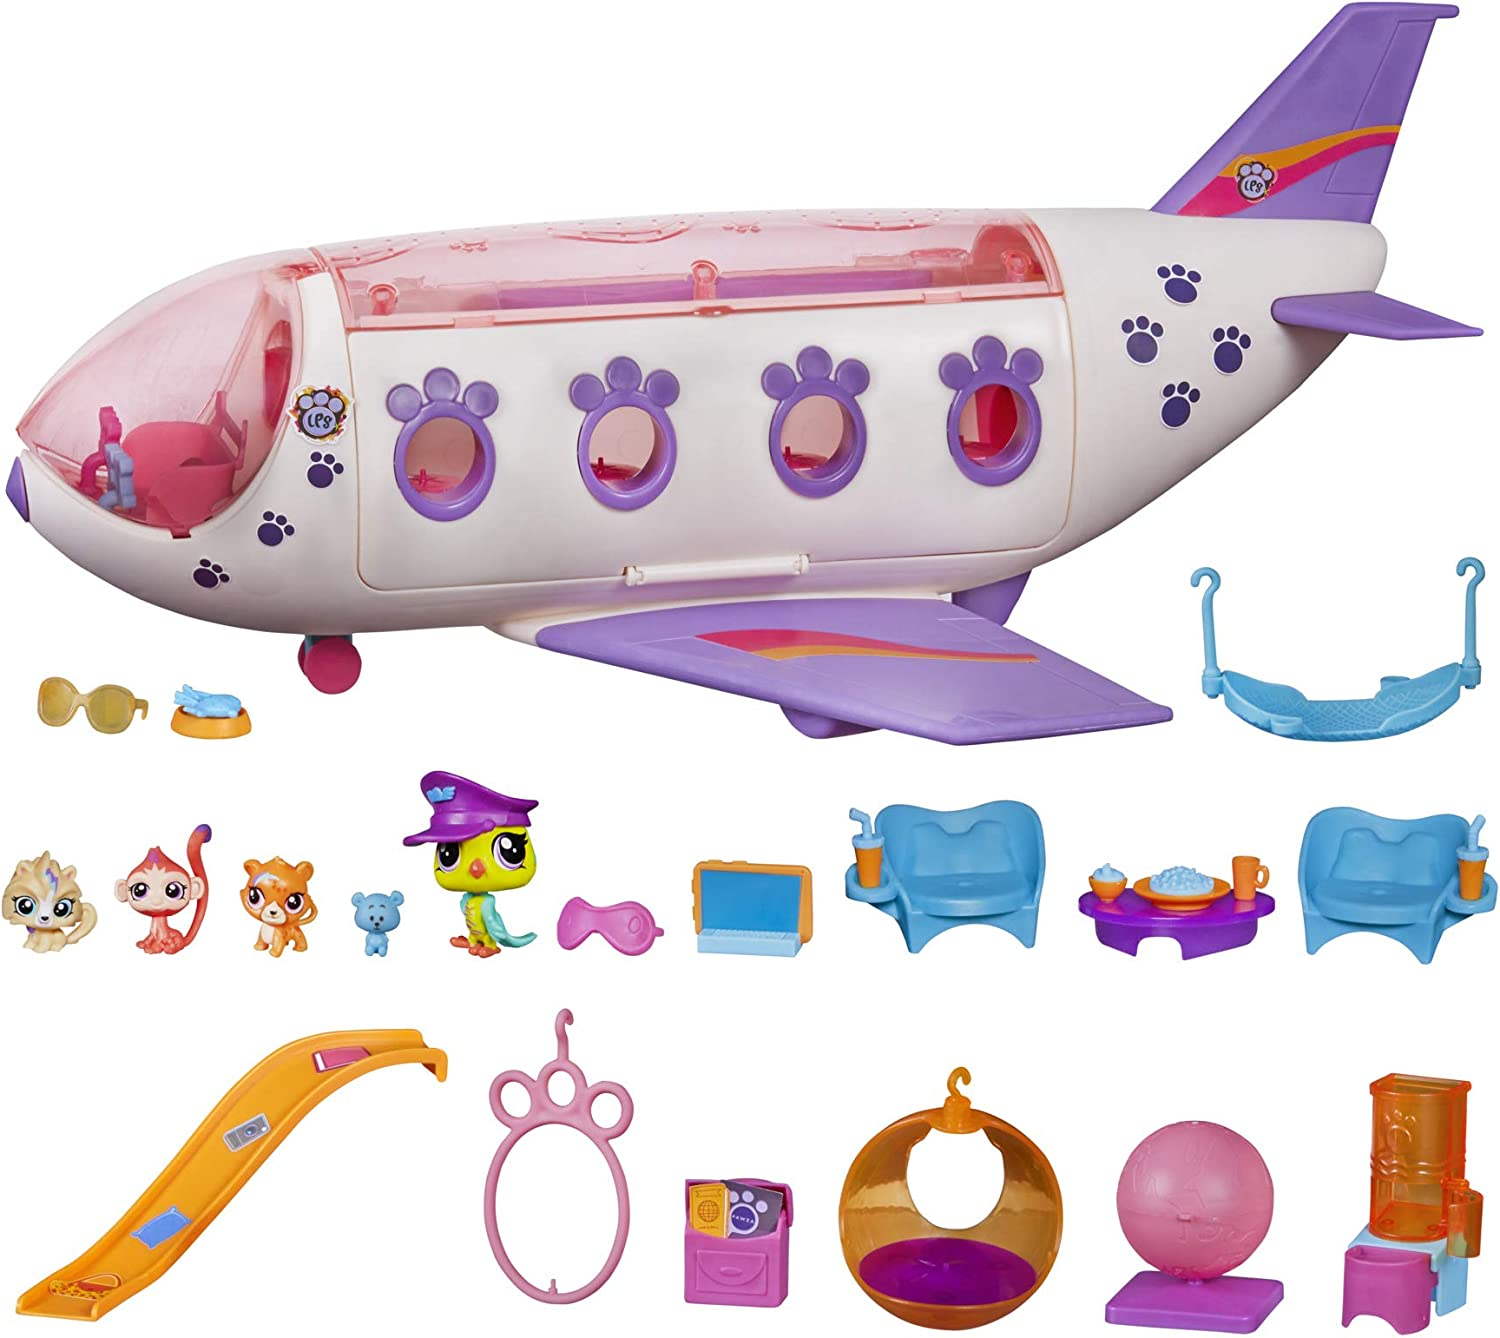 Littlest Pet Shop Pet Jet Playset Toy, Includes 4 Pets, Adult Assembly Required (No Tools Needed), Ages 4 and Up (Amazon Exclusive)